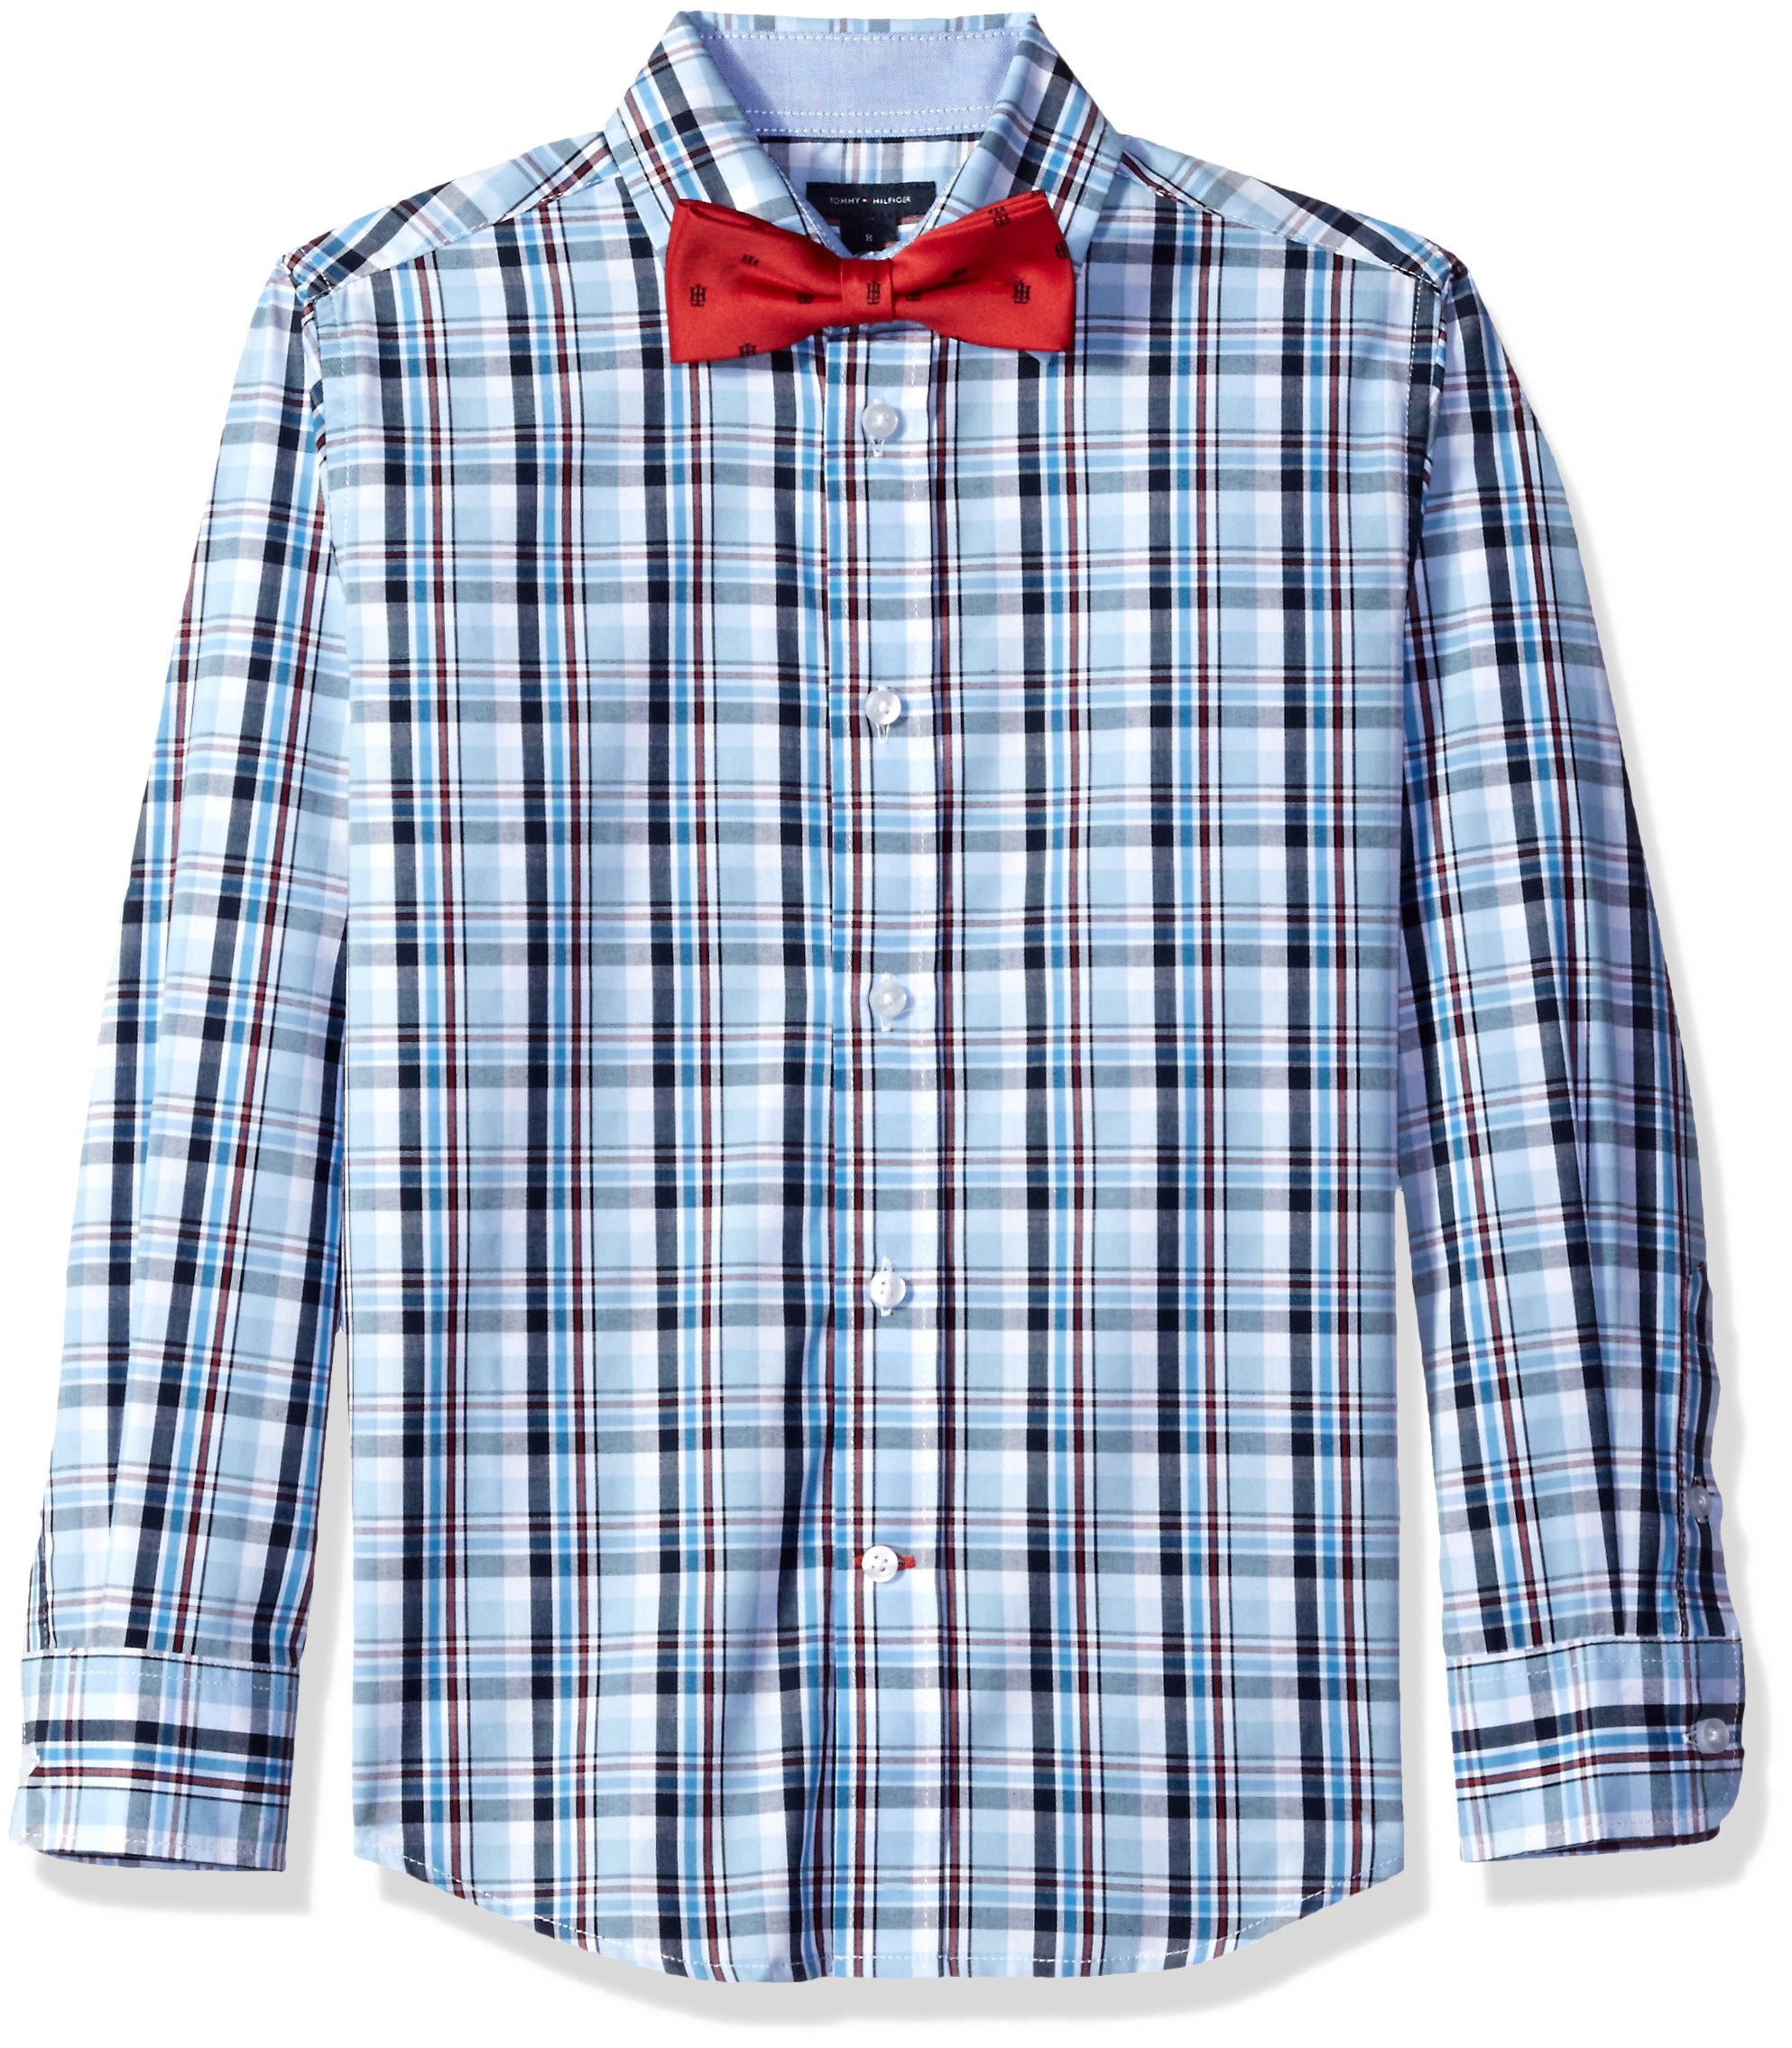 Tommy Hilfiger Big Boys' Plaid Shirt with Bow Tie, Light Blue, 20